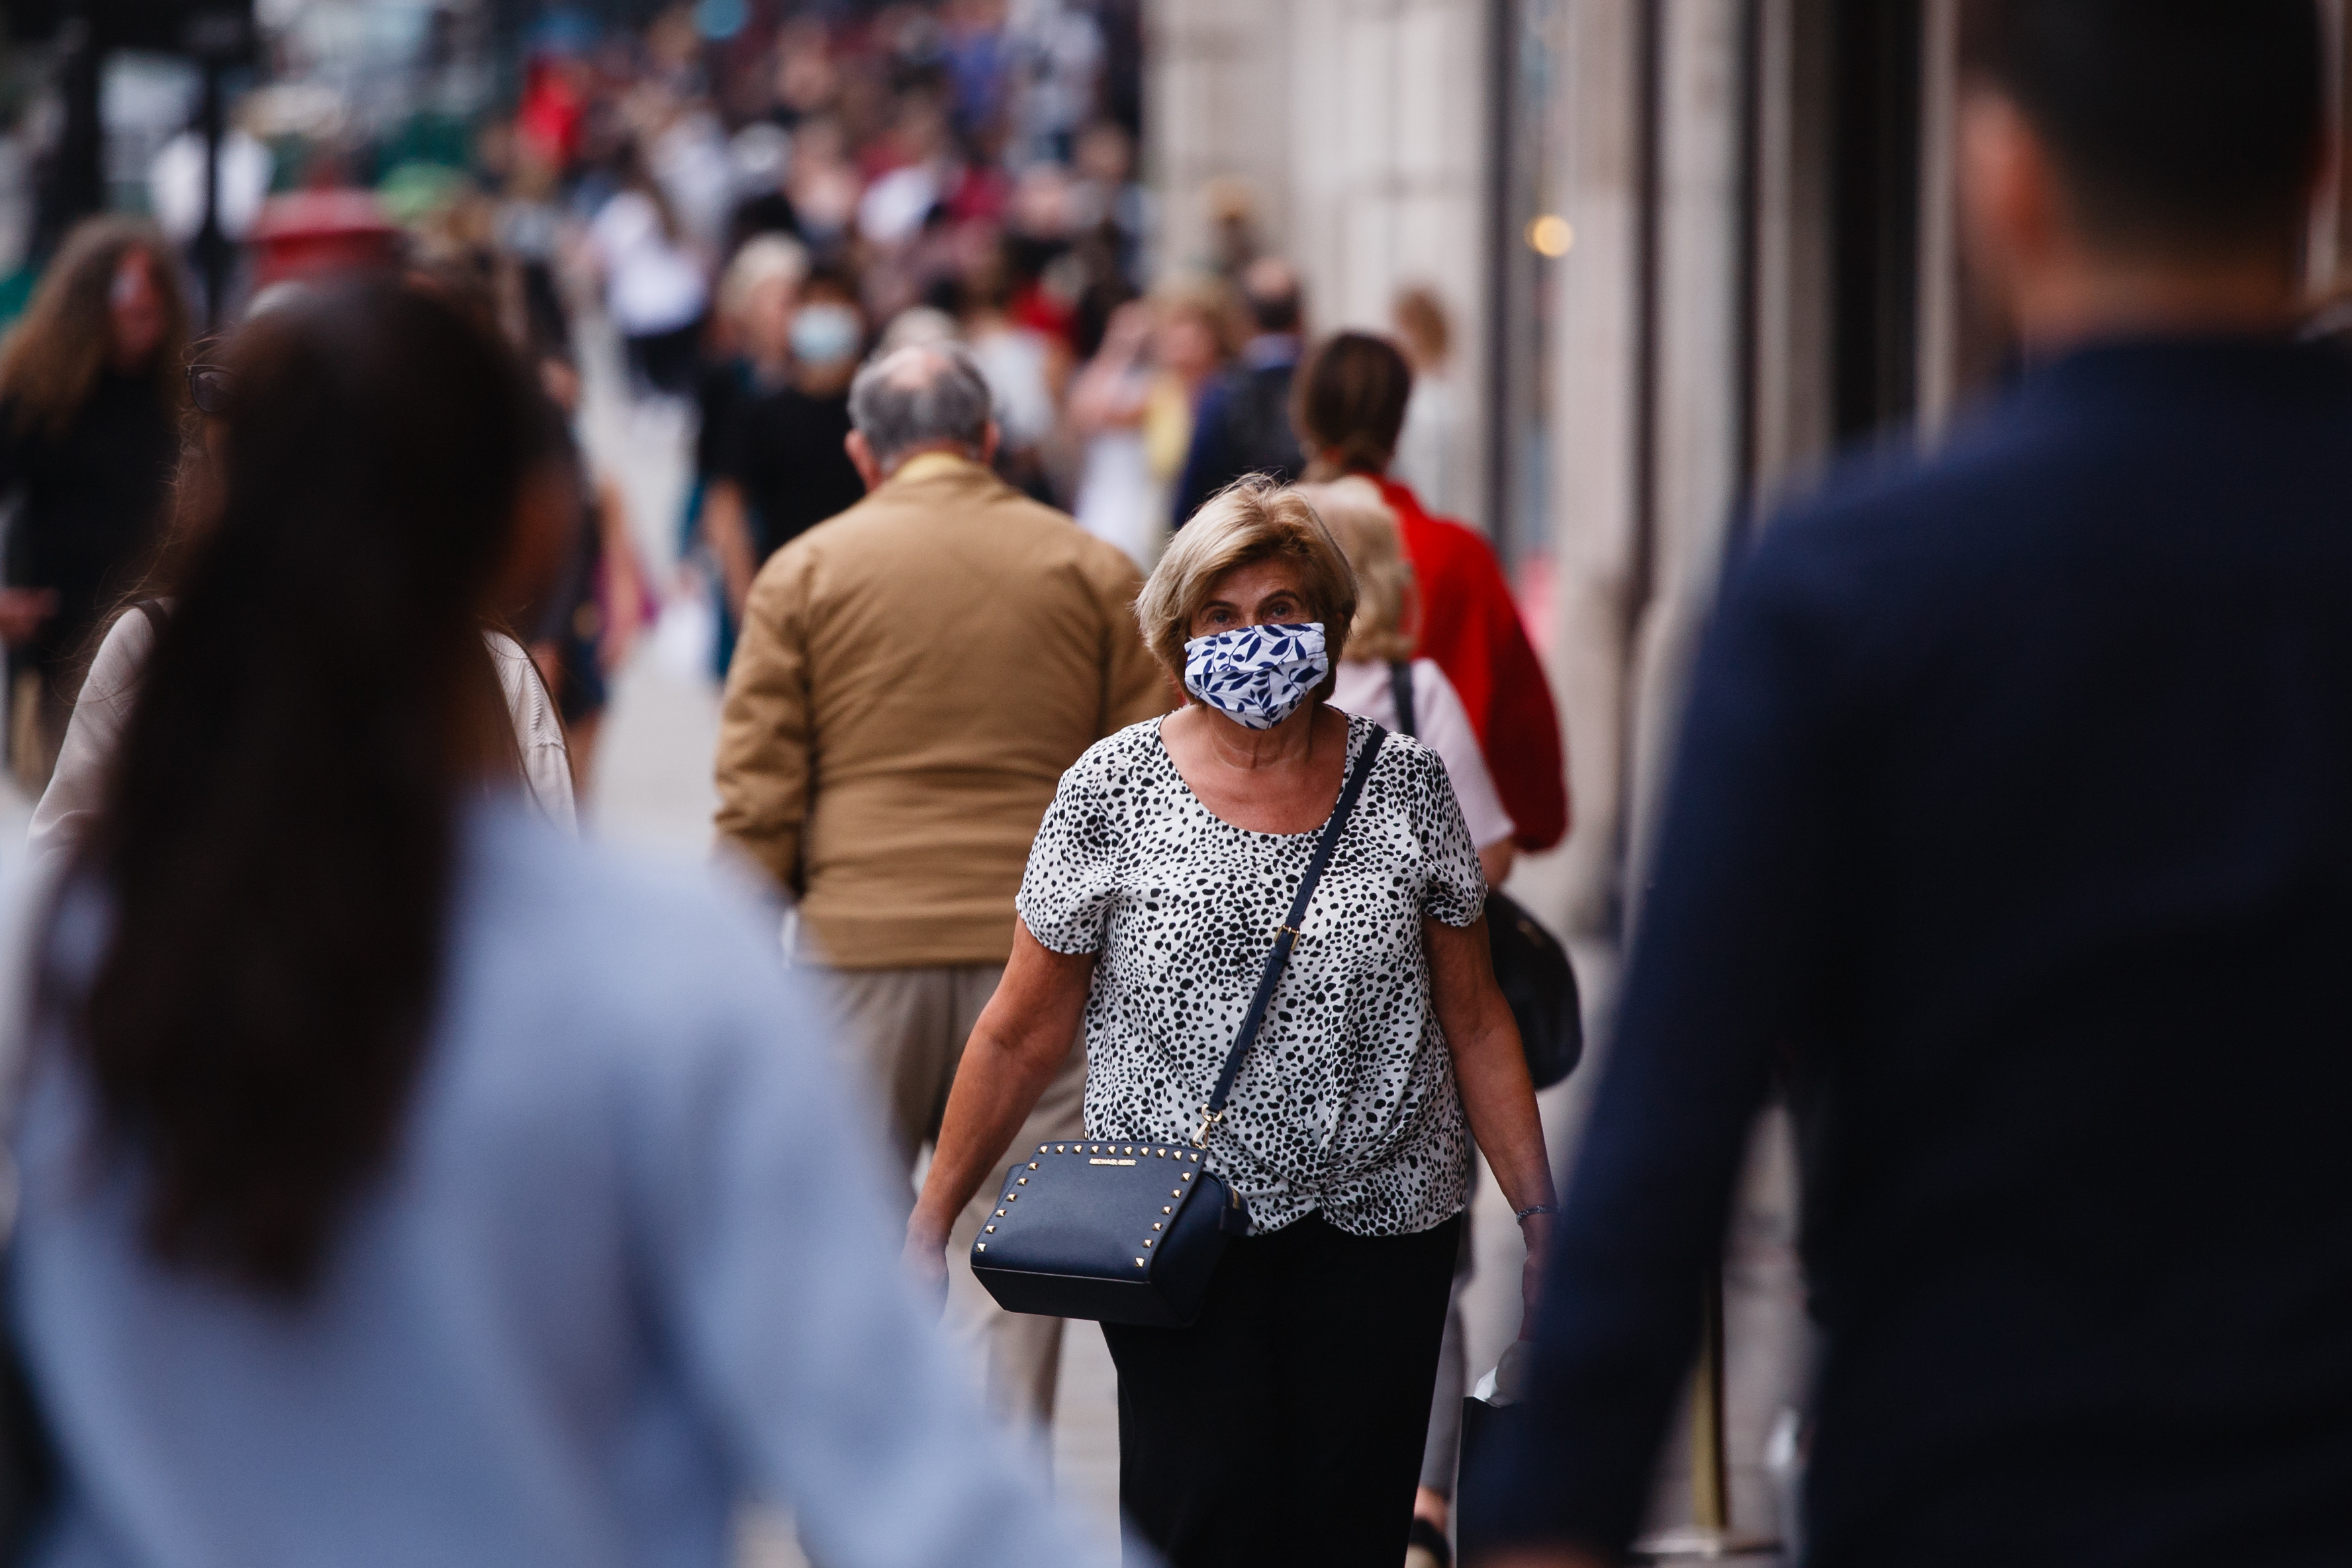 A woman wearing a face mask walks along Regent Street in London, England, on September 22, 2020. British Prime Minister Boris Johnson this afternoon announced a raft of new coronavirus restrictions to apply across England, possibly to last the next six months, including requiring pubs and restaurants to close at 10pm and for retail staff to all wear face masks. A return to home working where possible is also being encouraged. The new measures come amid fears of a 'second wave' of covid-19 deaths prompted by rising numbers of people testing positive in recent weeks. (Photo by David Cliff/NurPhoto via Getty Images)